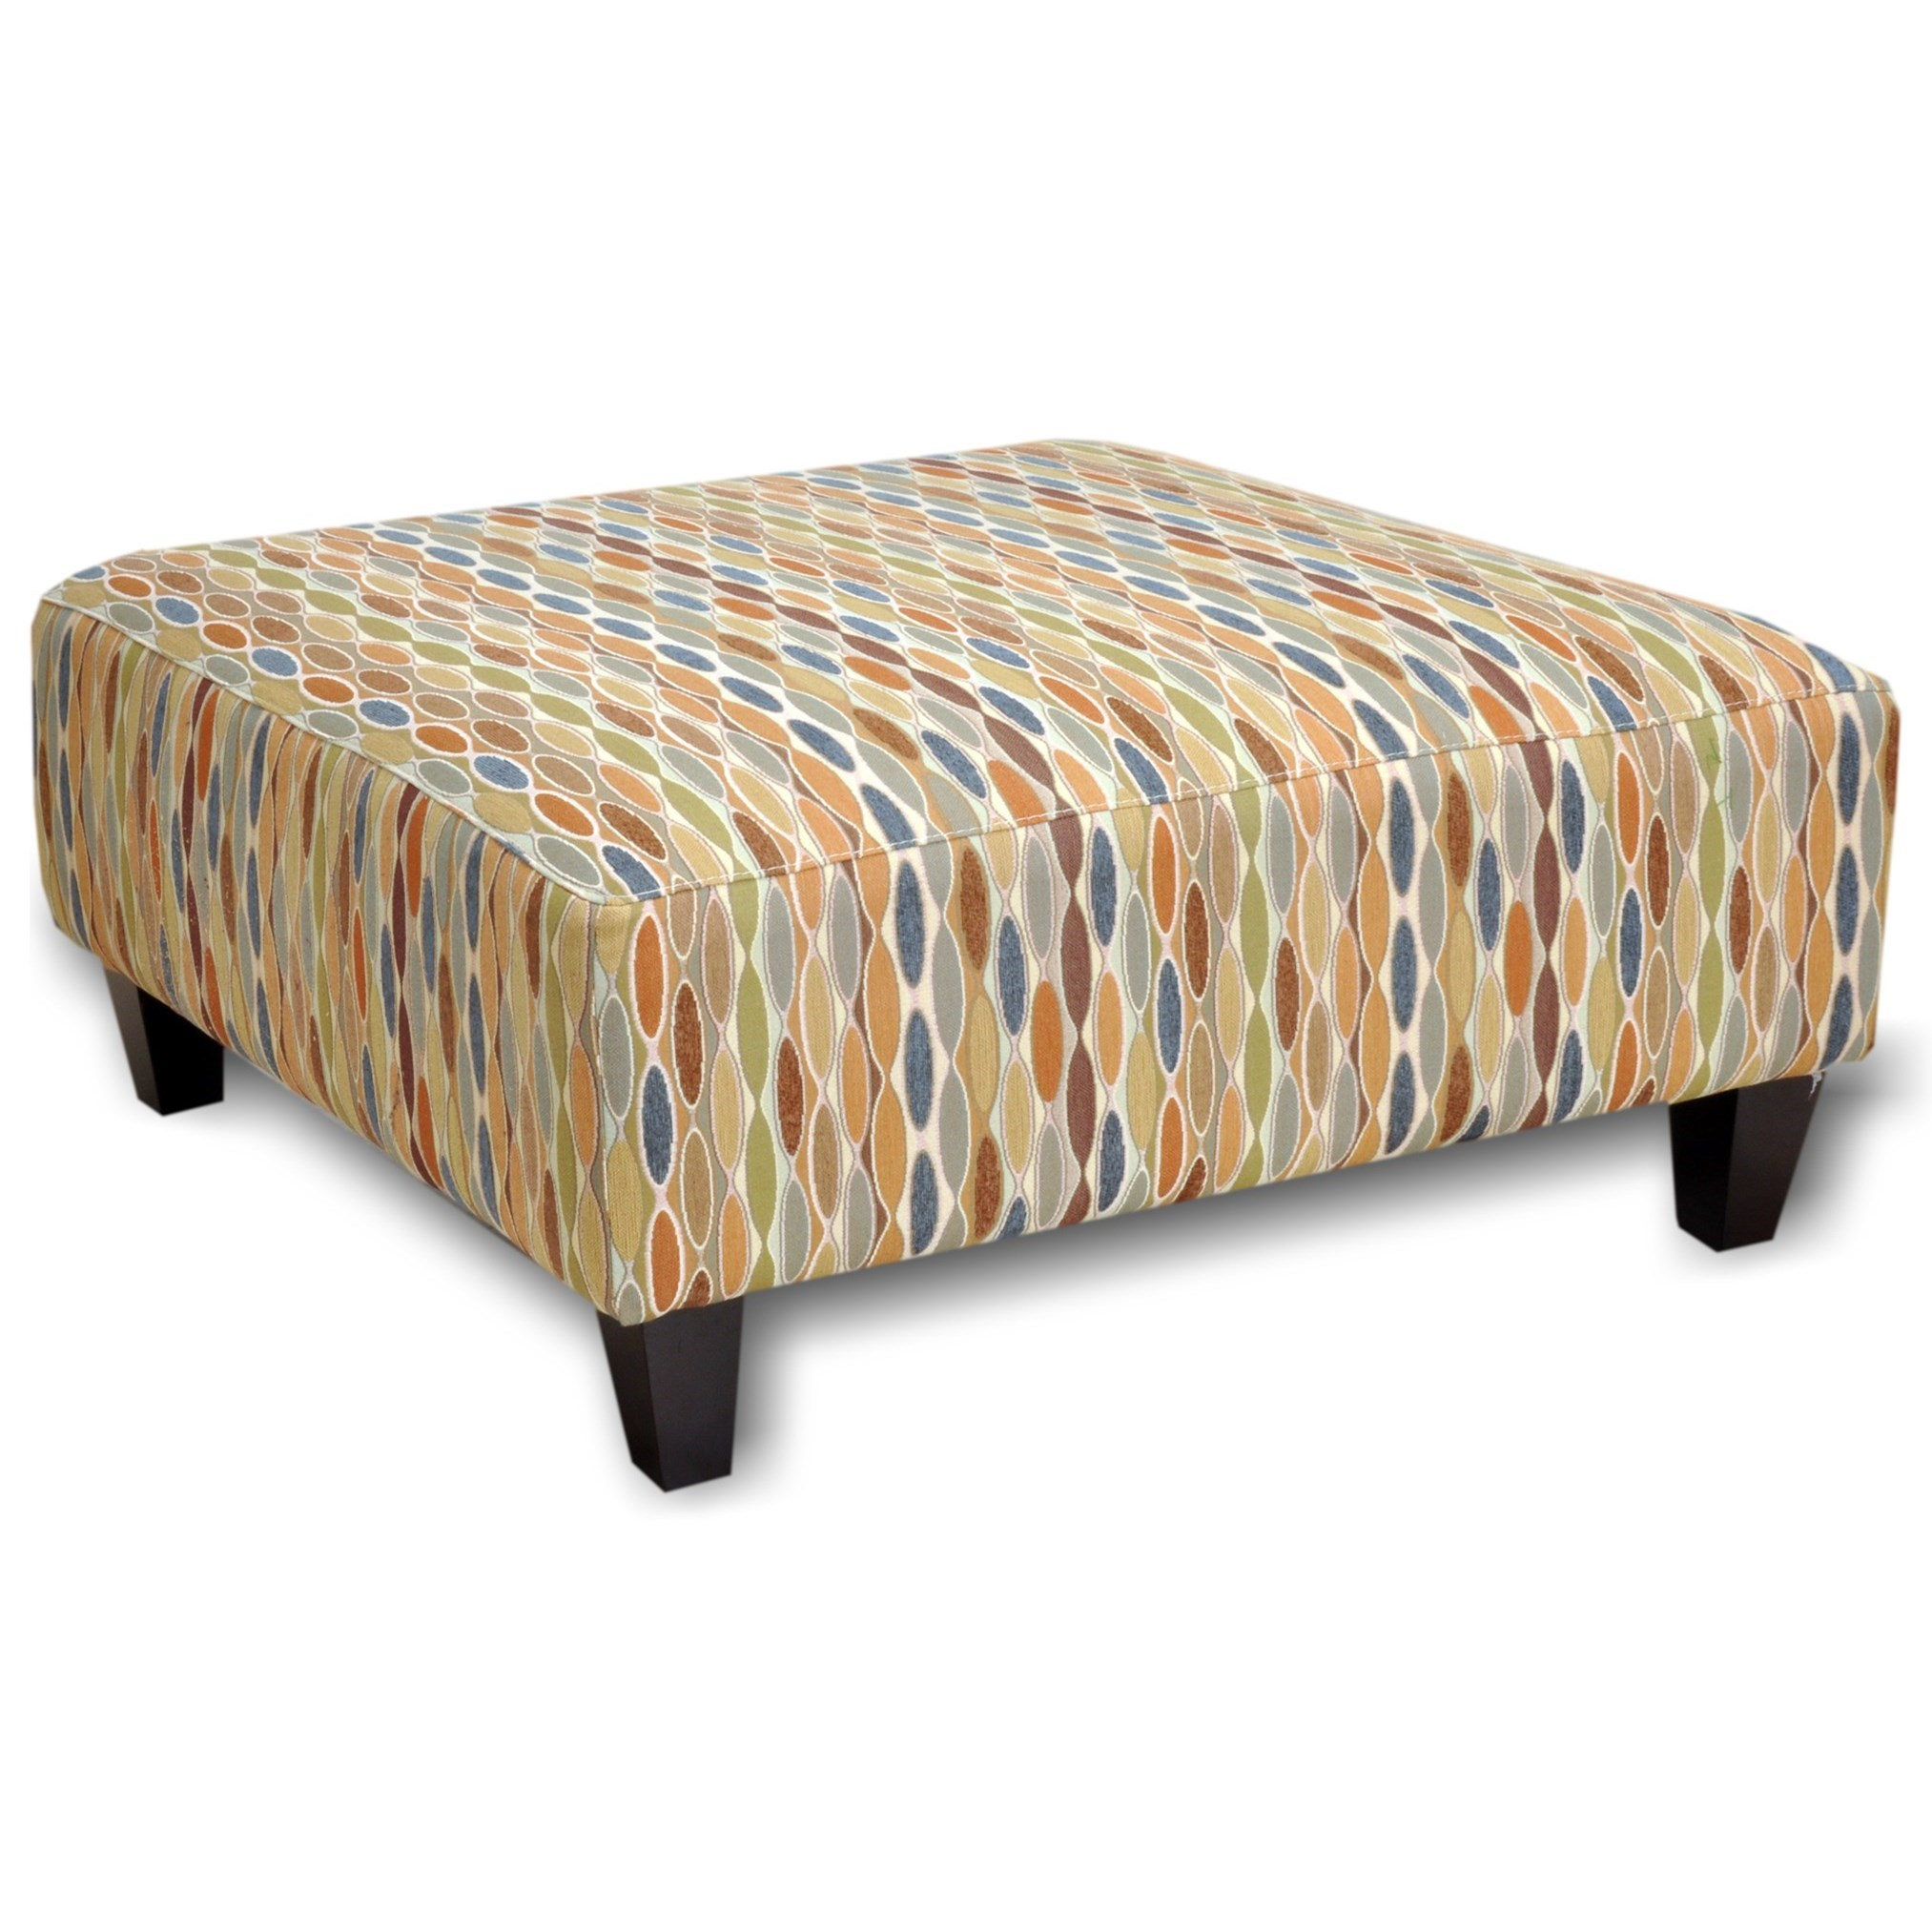 71418 Ottoman by Franklin at Wilcox Furniture